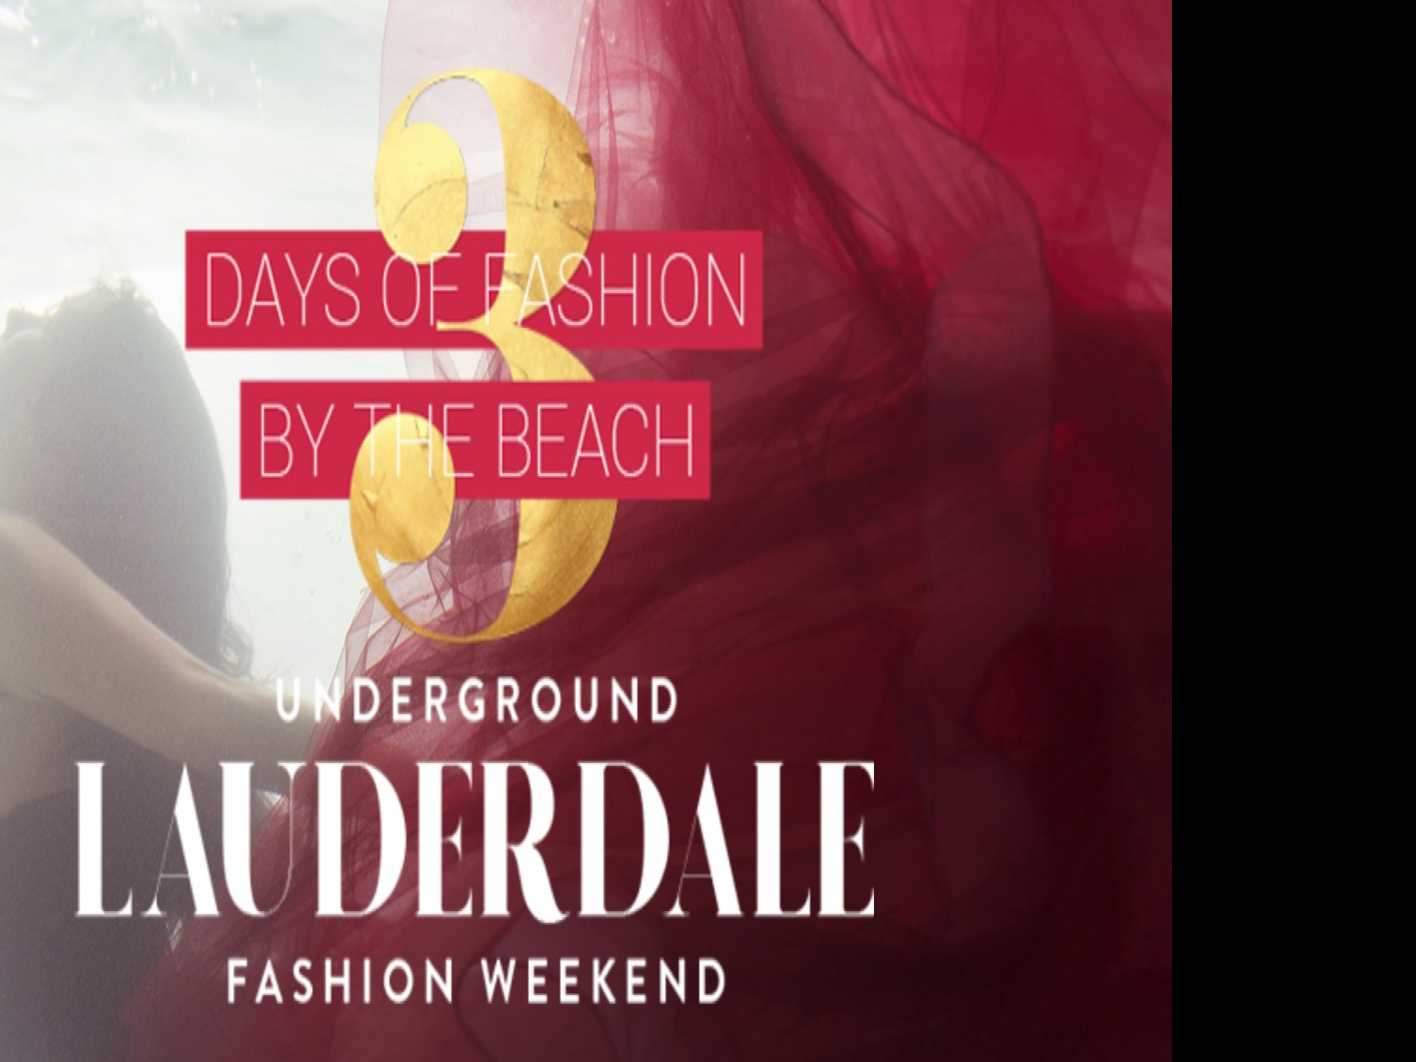 Don't Miss: Underground Fort Lauderdale Fashion Weekend